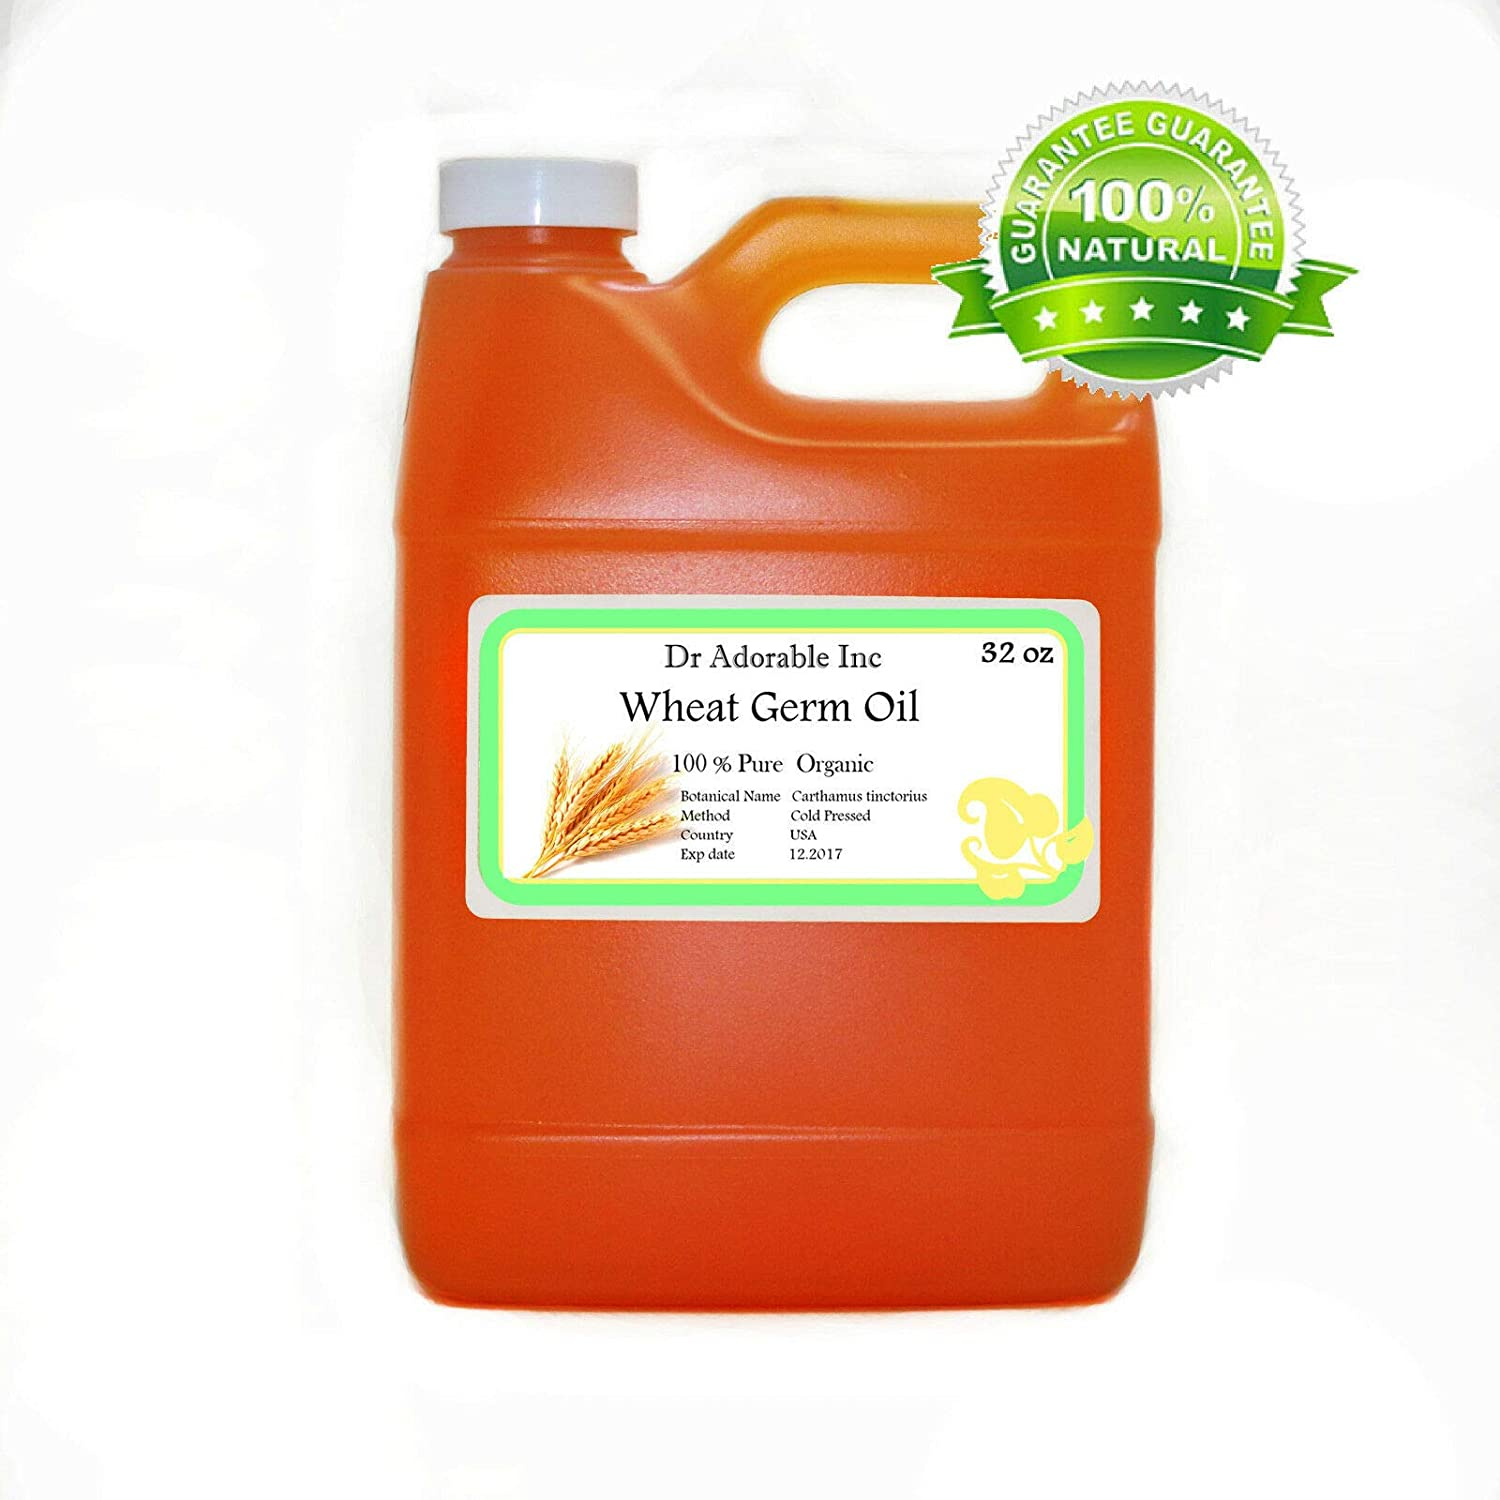 32 OZ PREMIUM Wheat Germ Oil Unrefined Virgin Cold Pressed Hair Body Skin Nails Care by Dr.Adorable